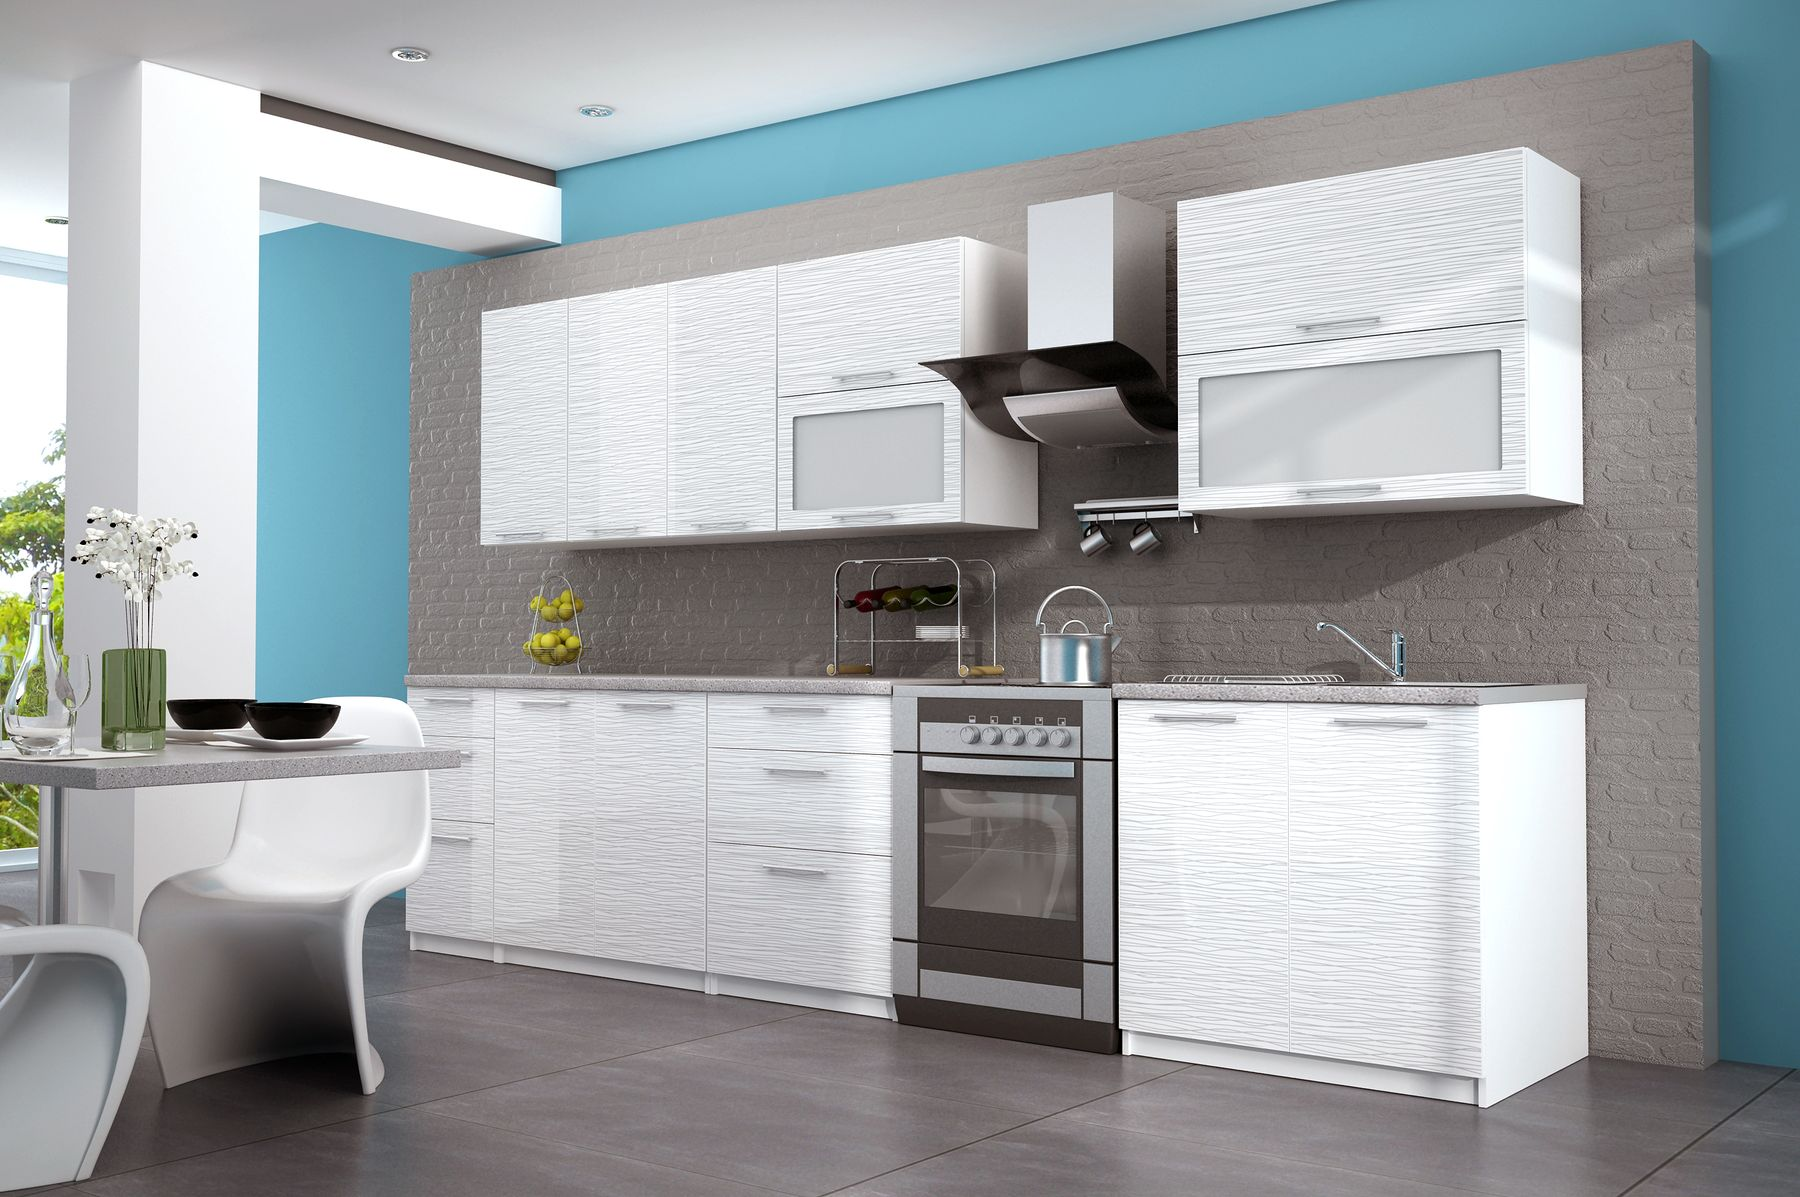 EURO-kitchen-high-gloss-white-with-sile-strips